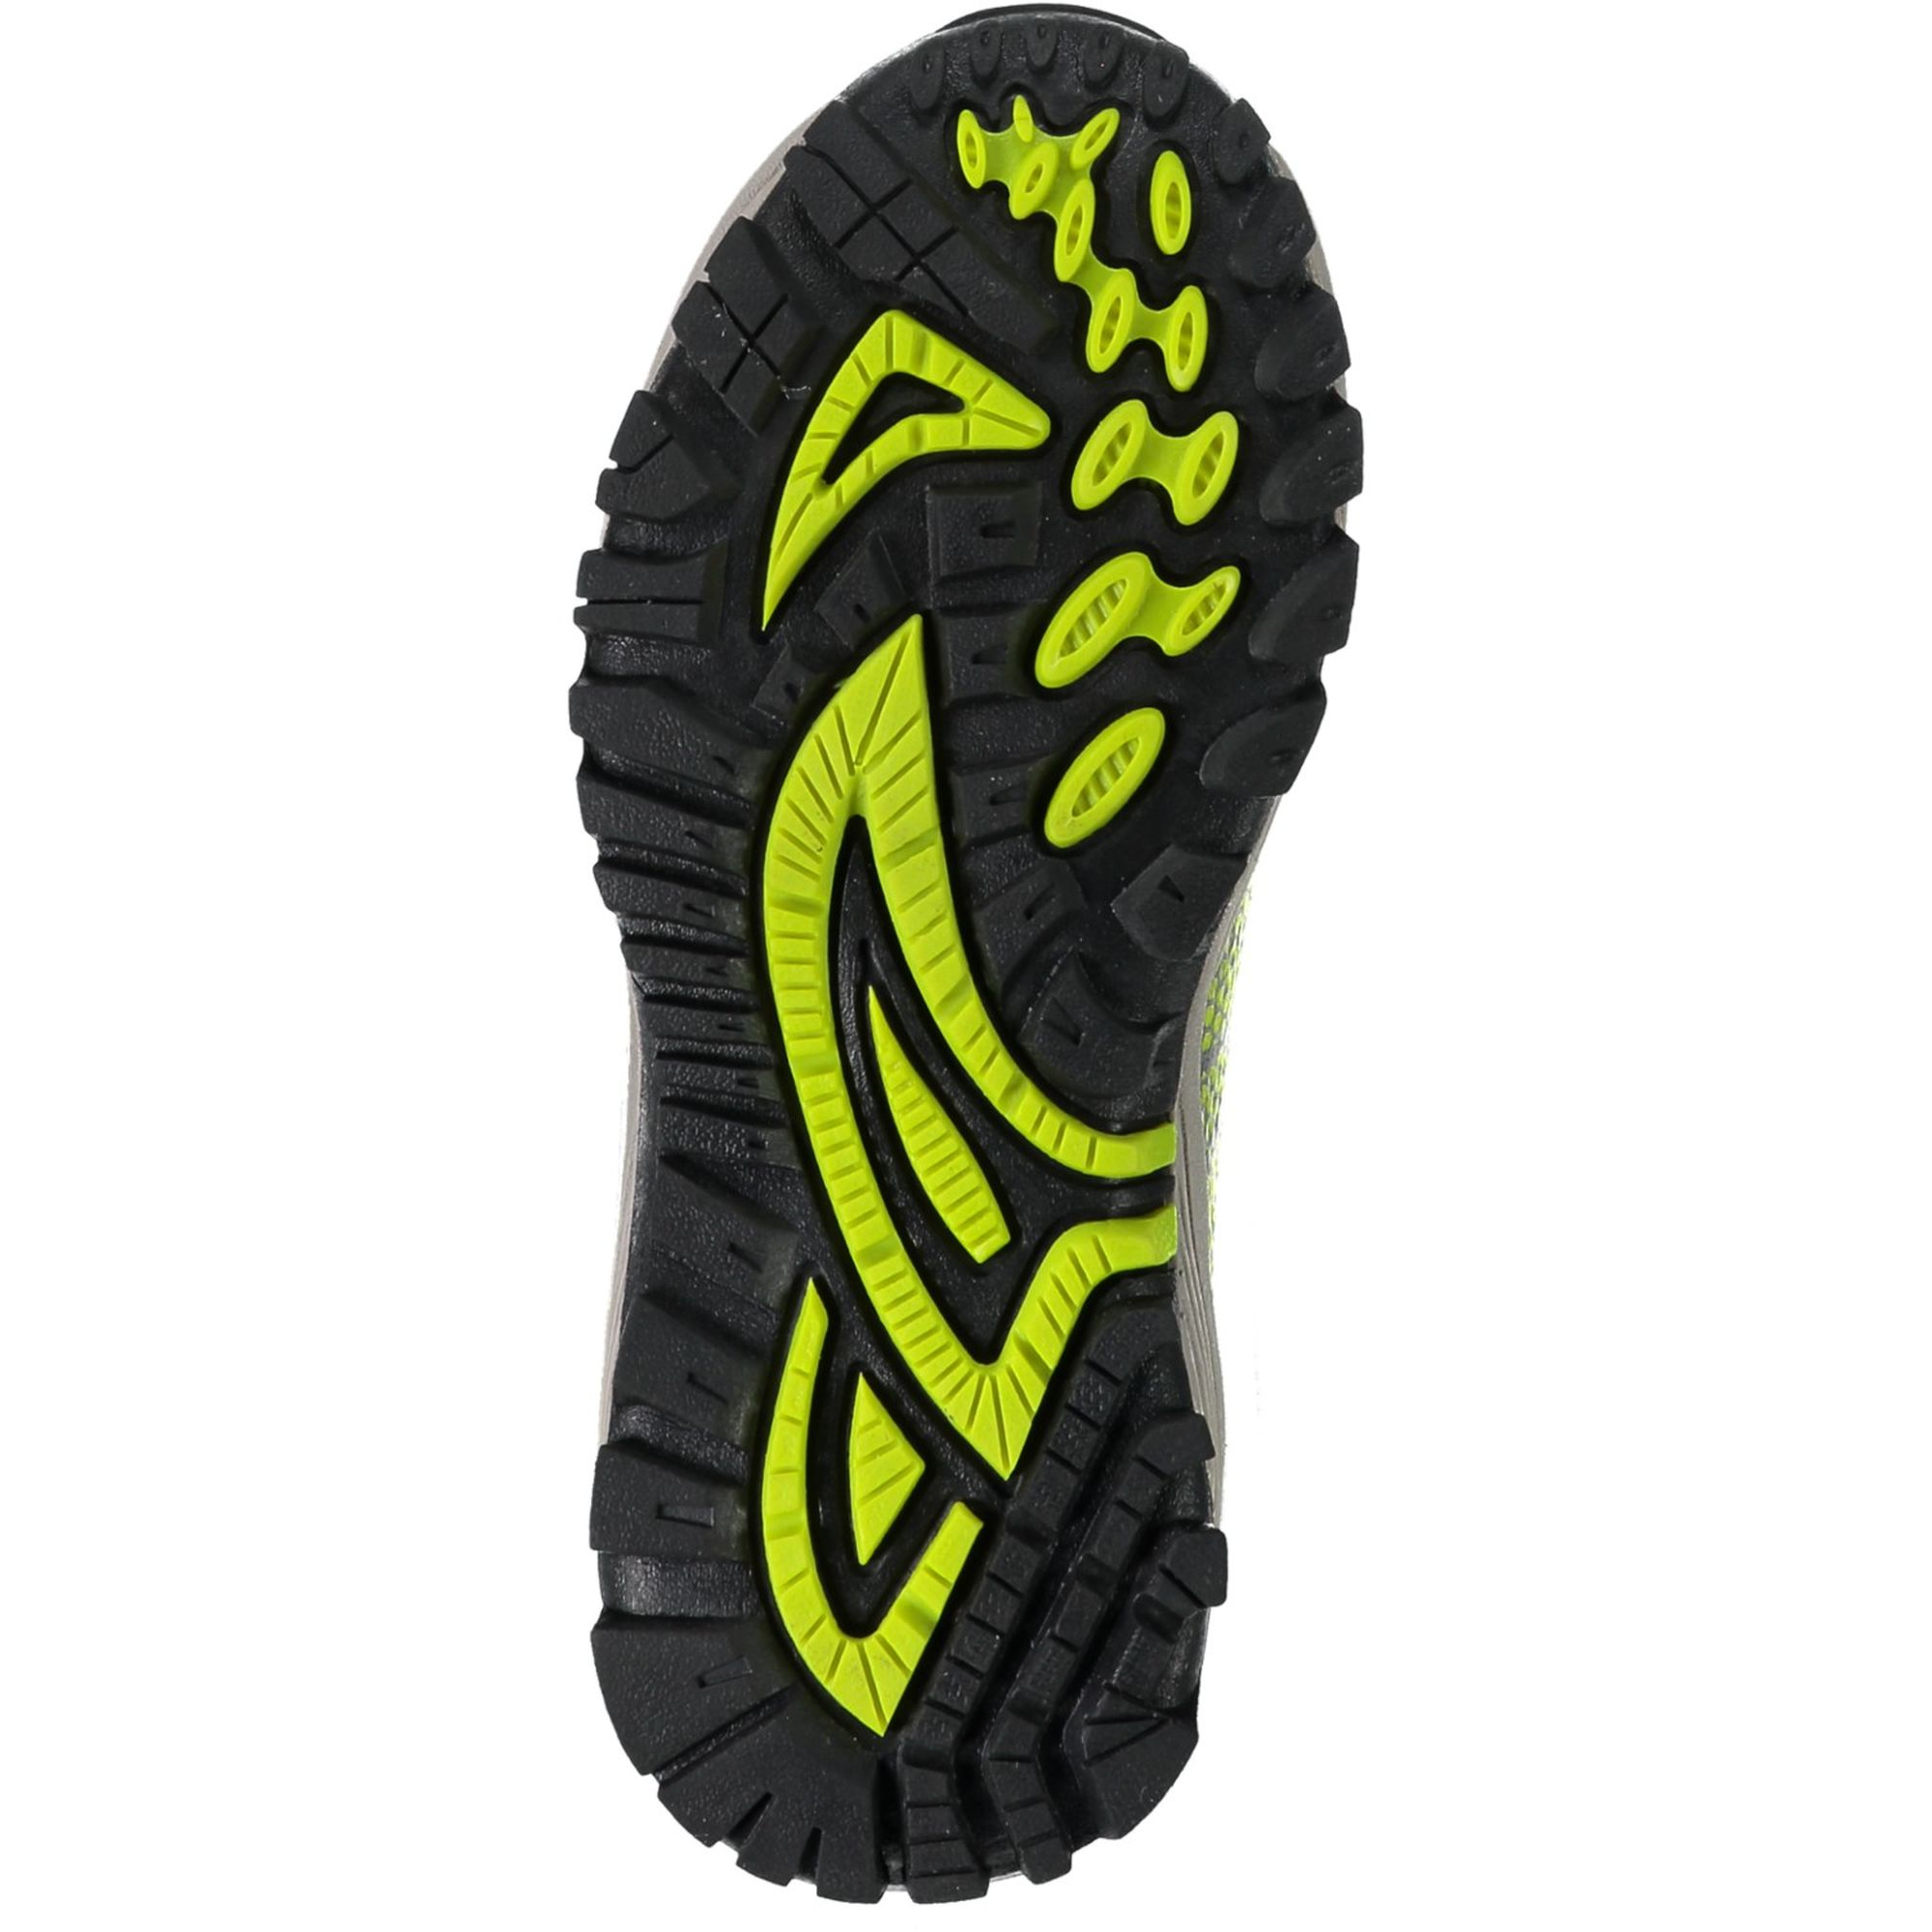 CMP trekking zapatos outdoorschuh Kids Arietis trekking Shoes WP verde claro